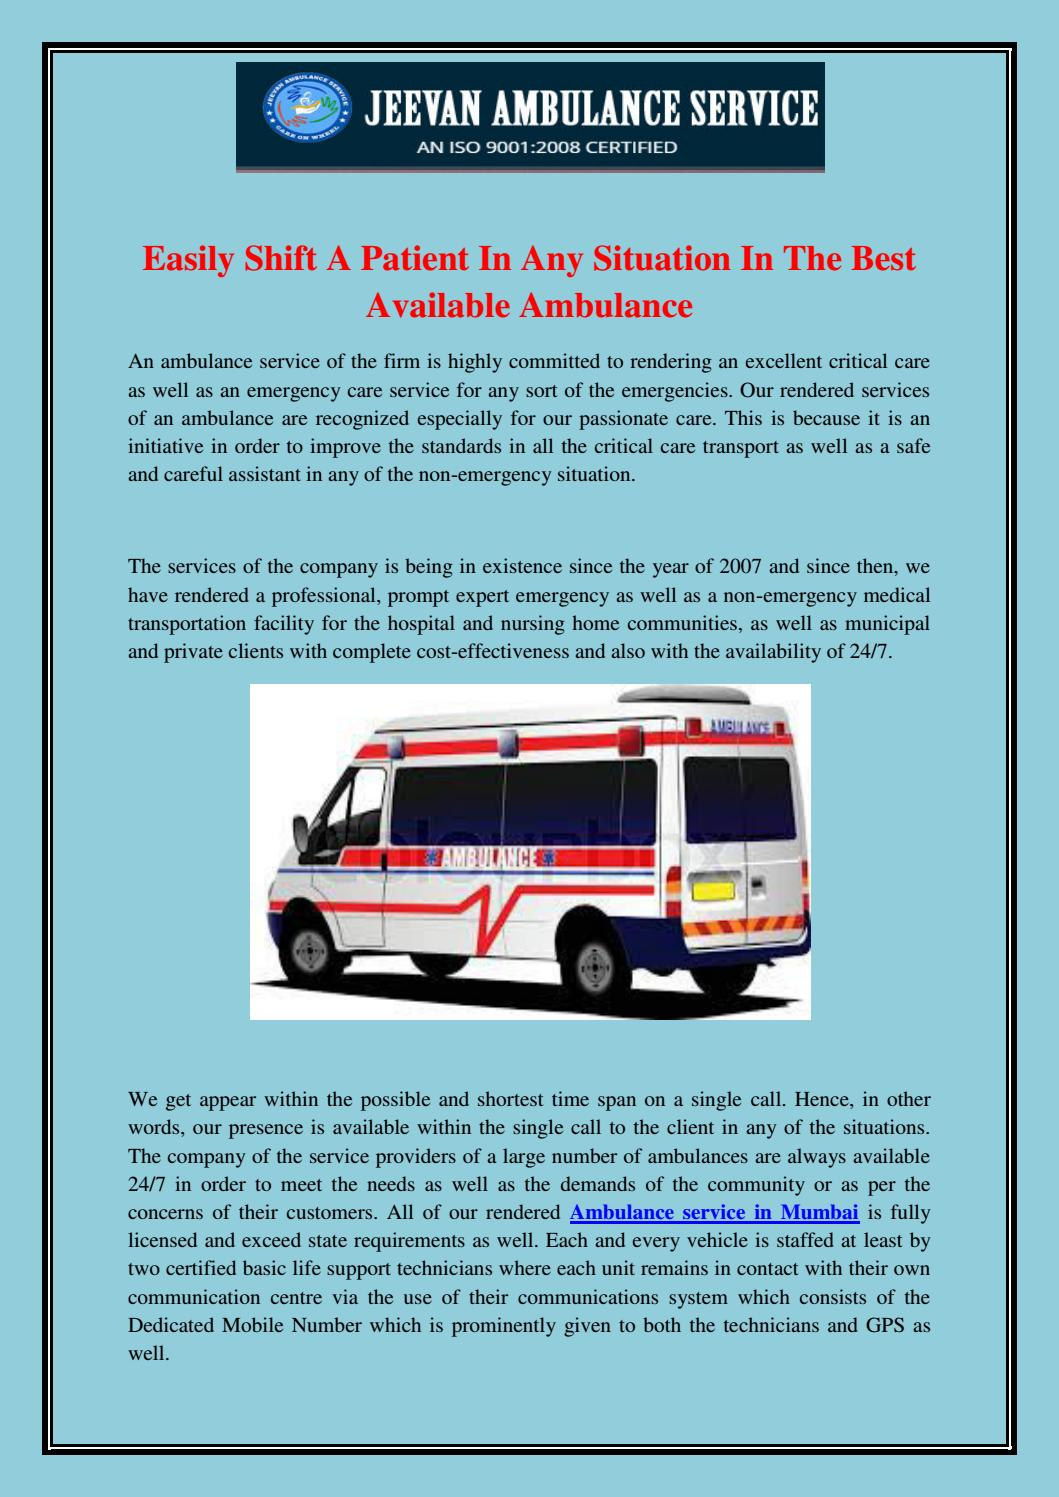 Easily Shift A Patient In Any Situation In The Best